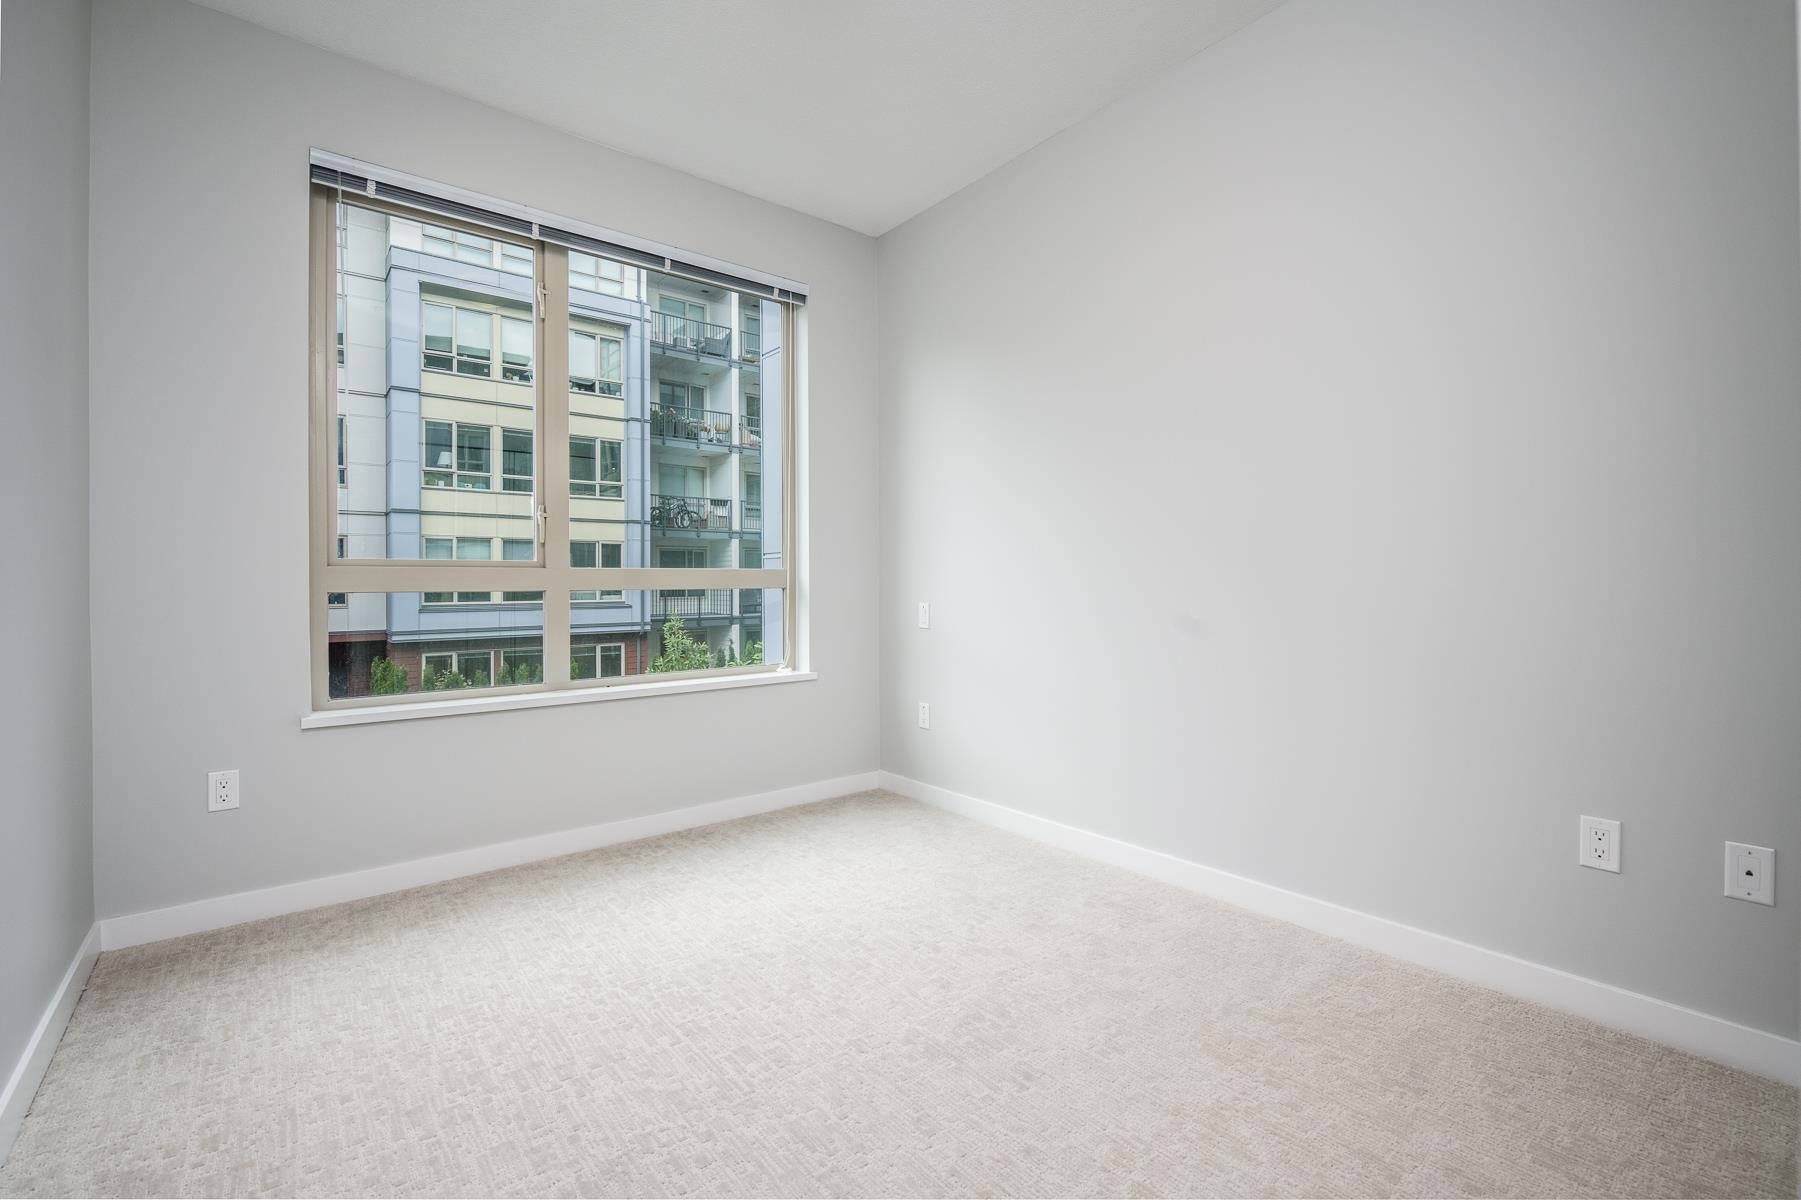 219 2651 LIBRARY LANE - Lynn Valley Apartment/Condo for sale, 2 Bedrooms (R2623232) - #13